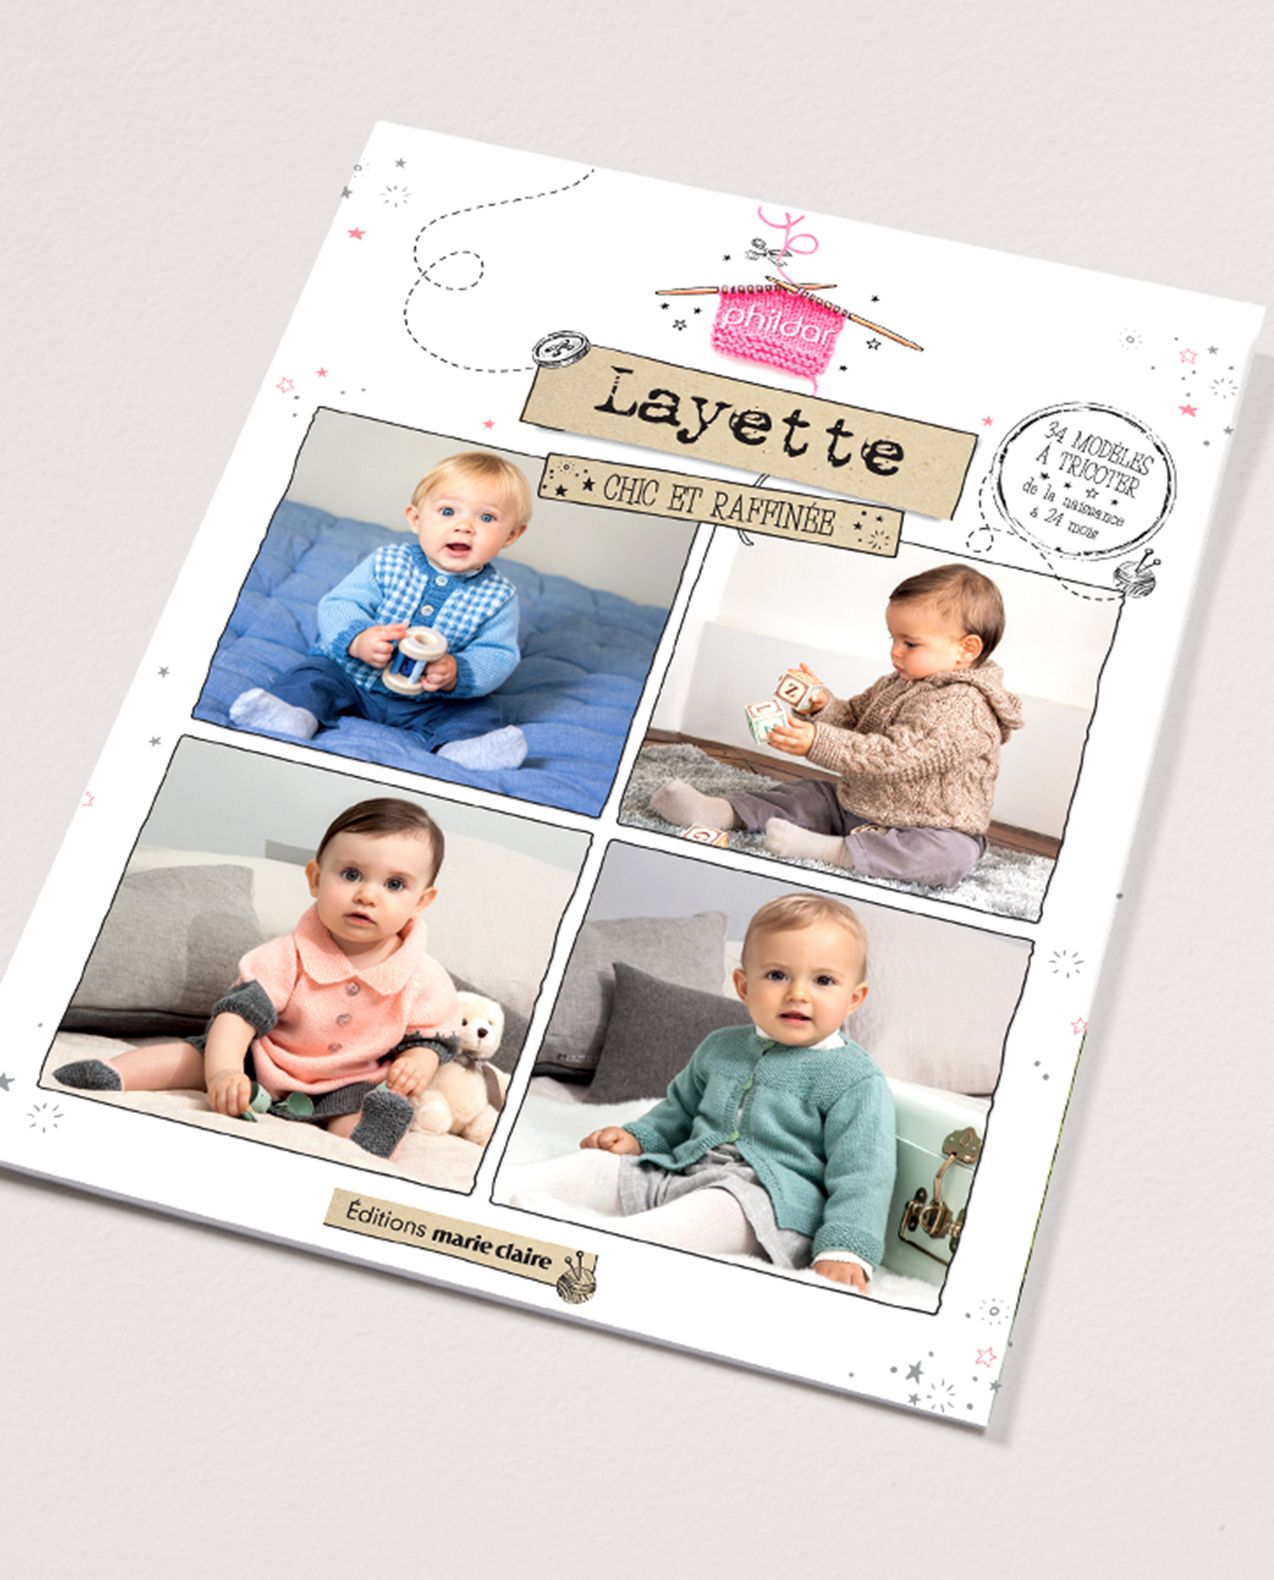 Livre tricot n°853 : Layette chic